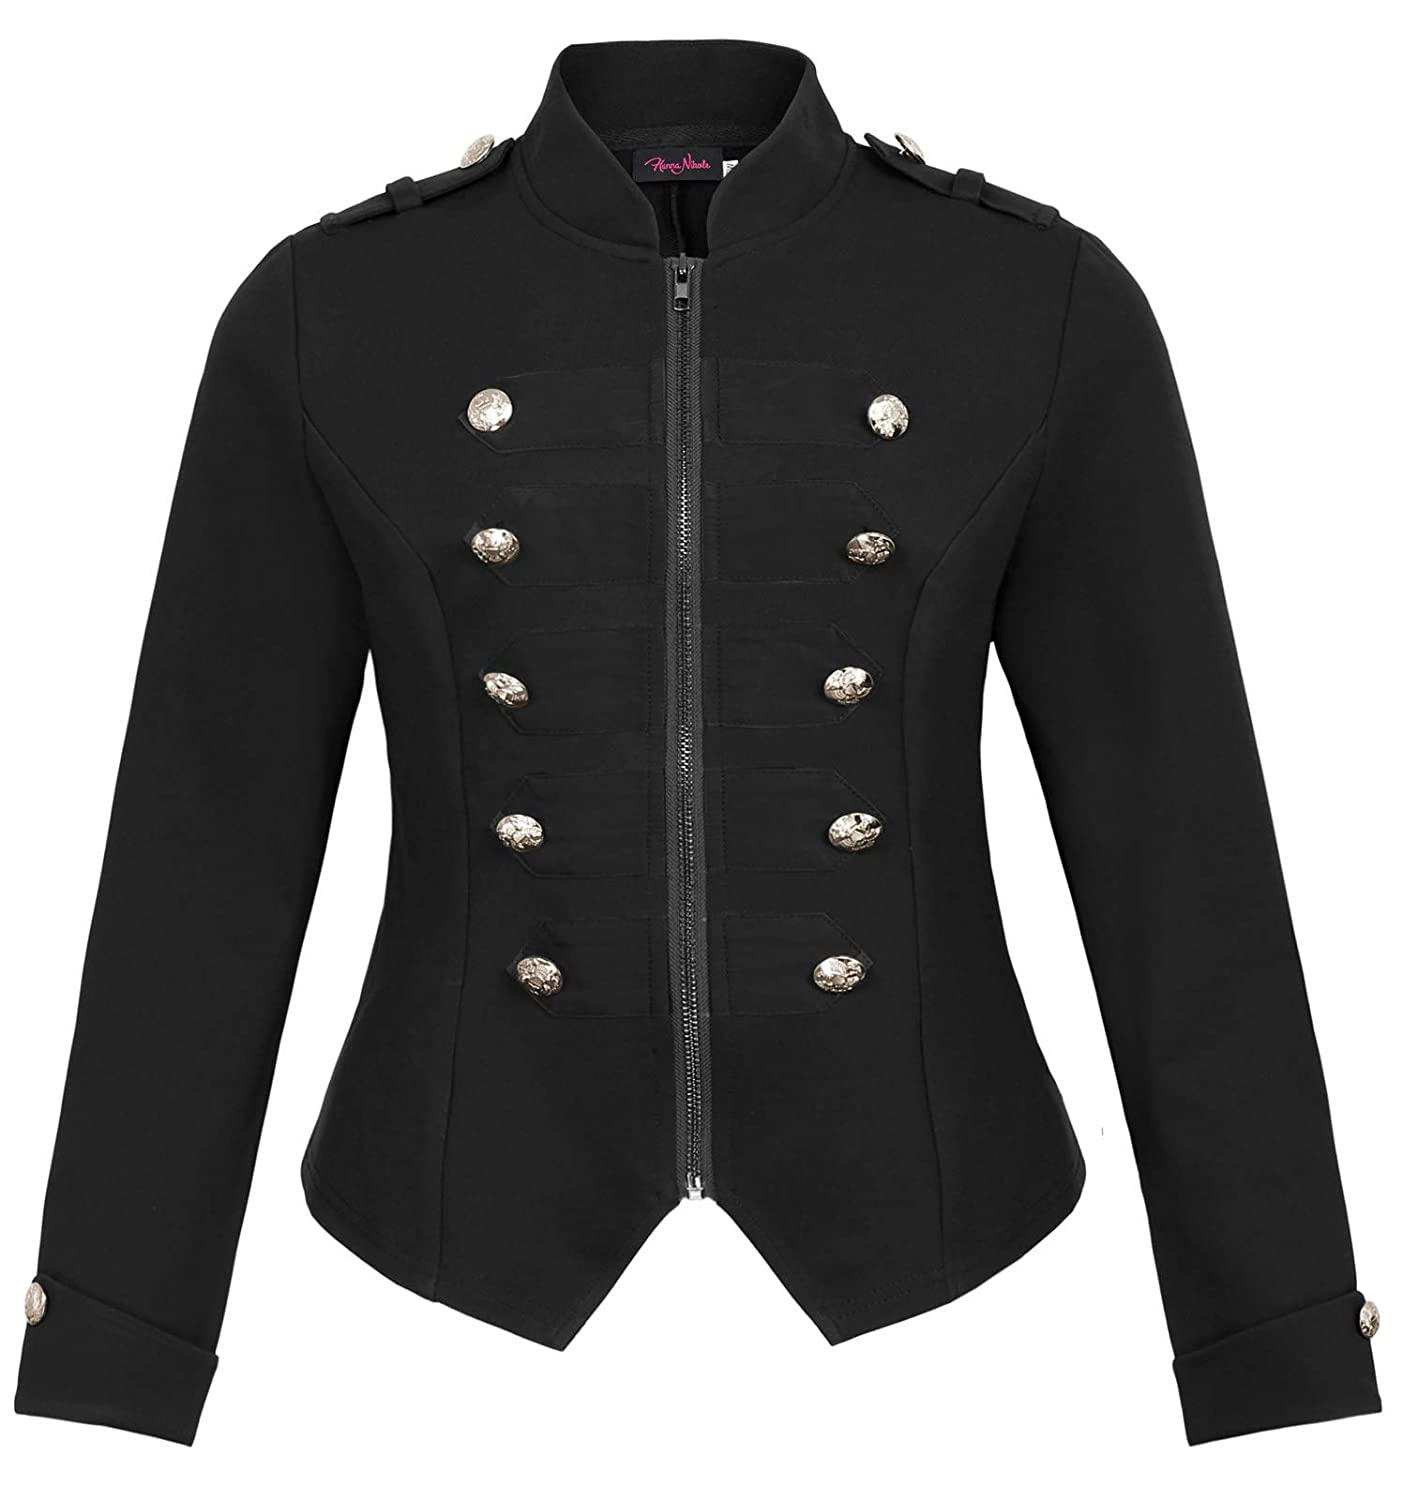 Steampunk Tops | Blouses, Shirts Womens Plus Size Victorian Zip Up Stand Collar Military Light Jacket Blazers $28.99 AT vintagedancer.com